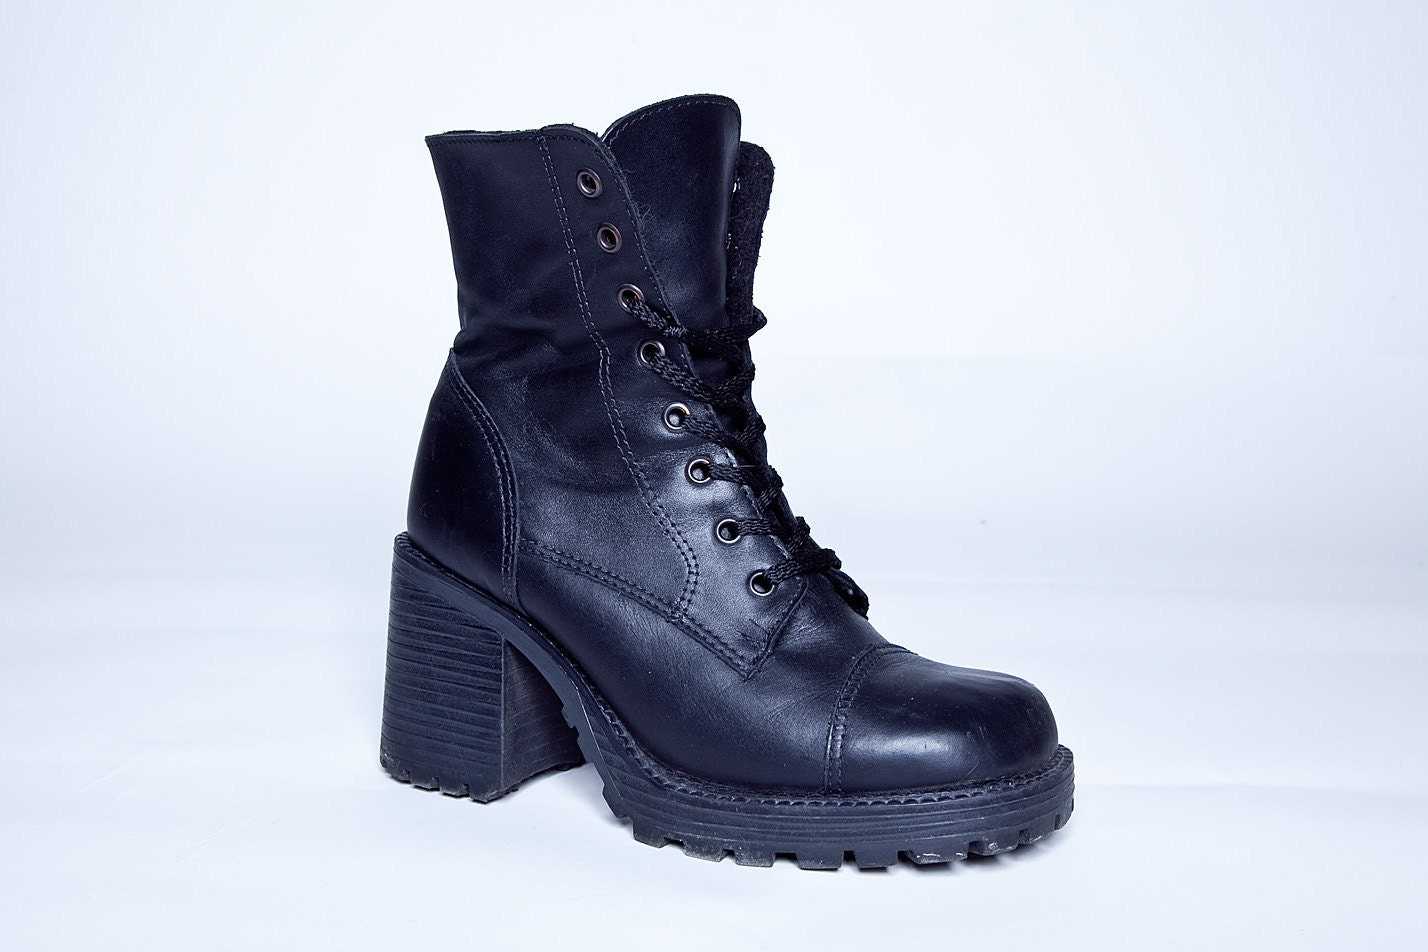 90s chunky heeled black combat boots 7 by blackgatestudio